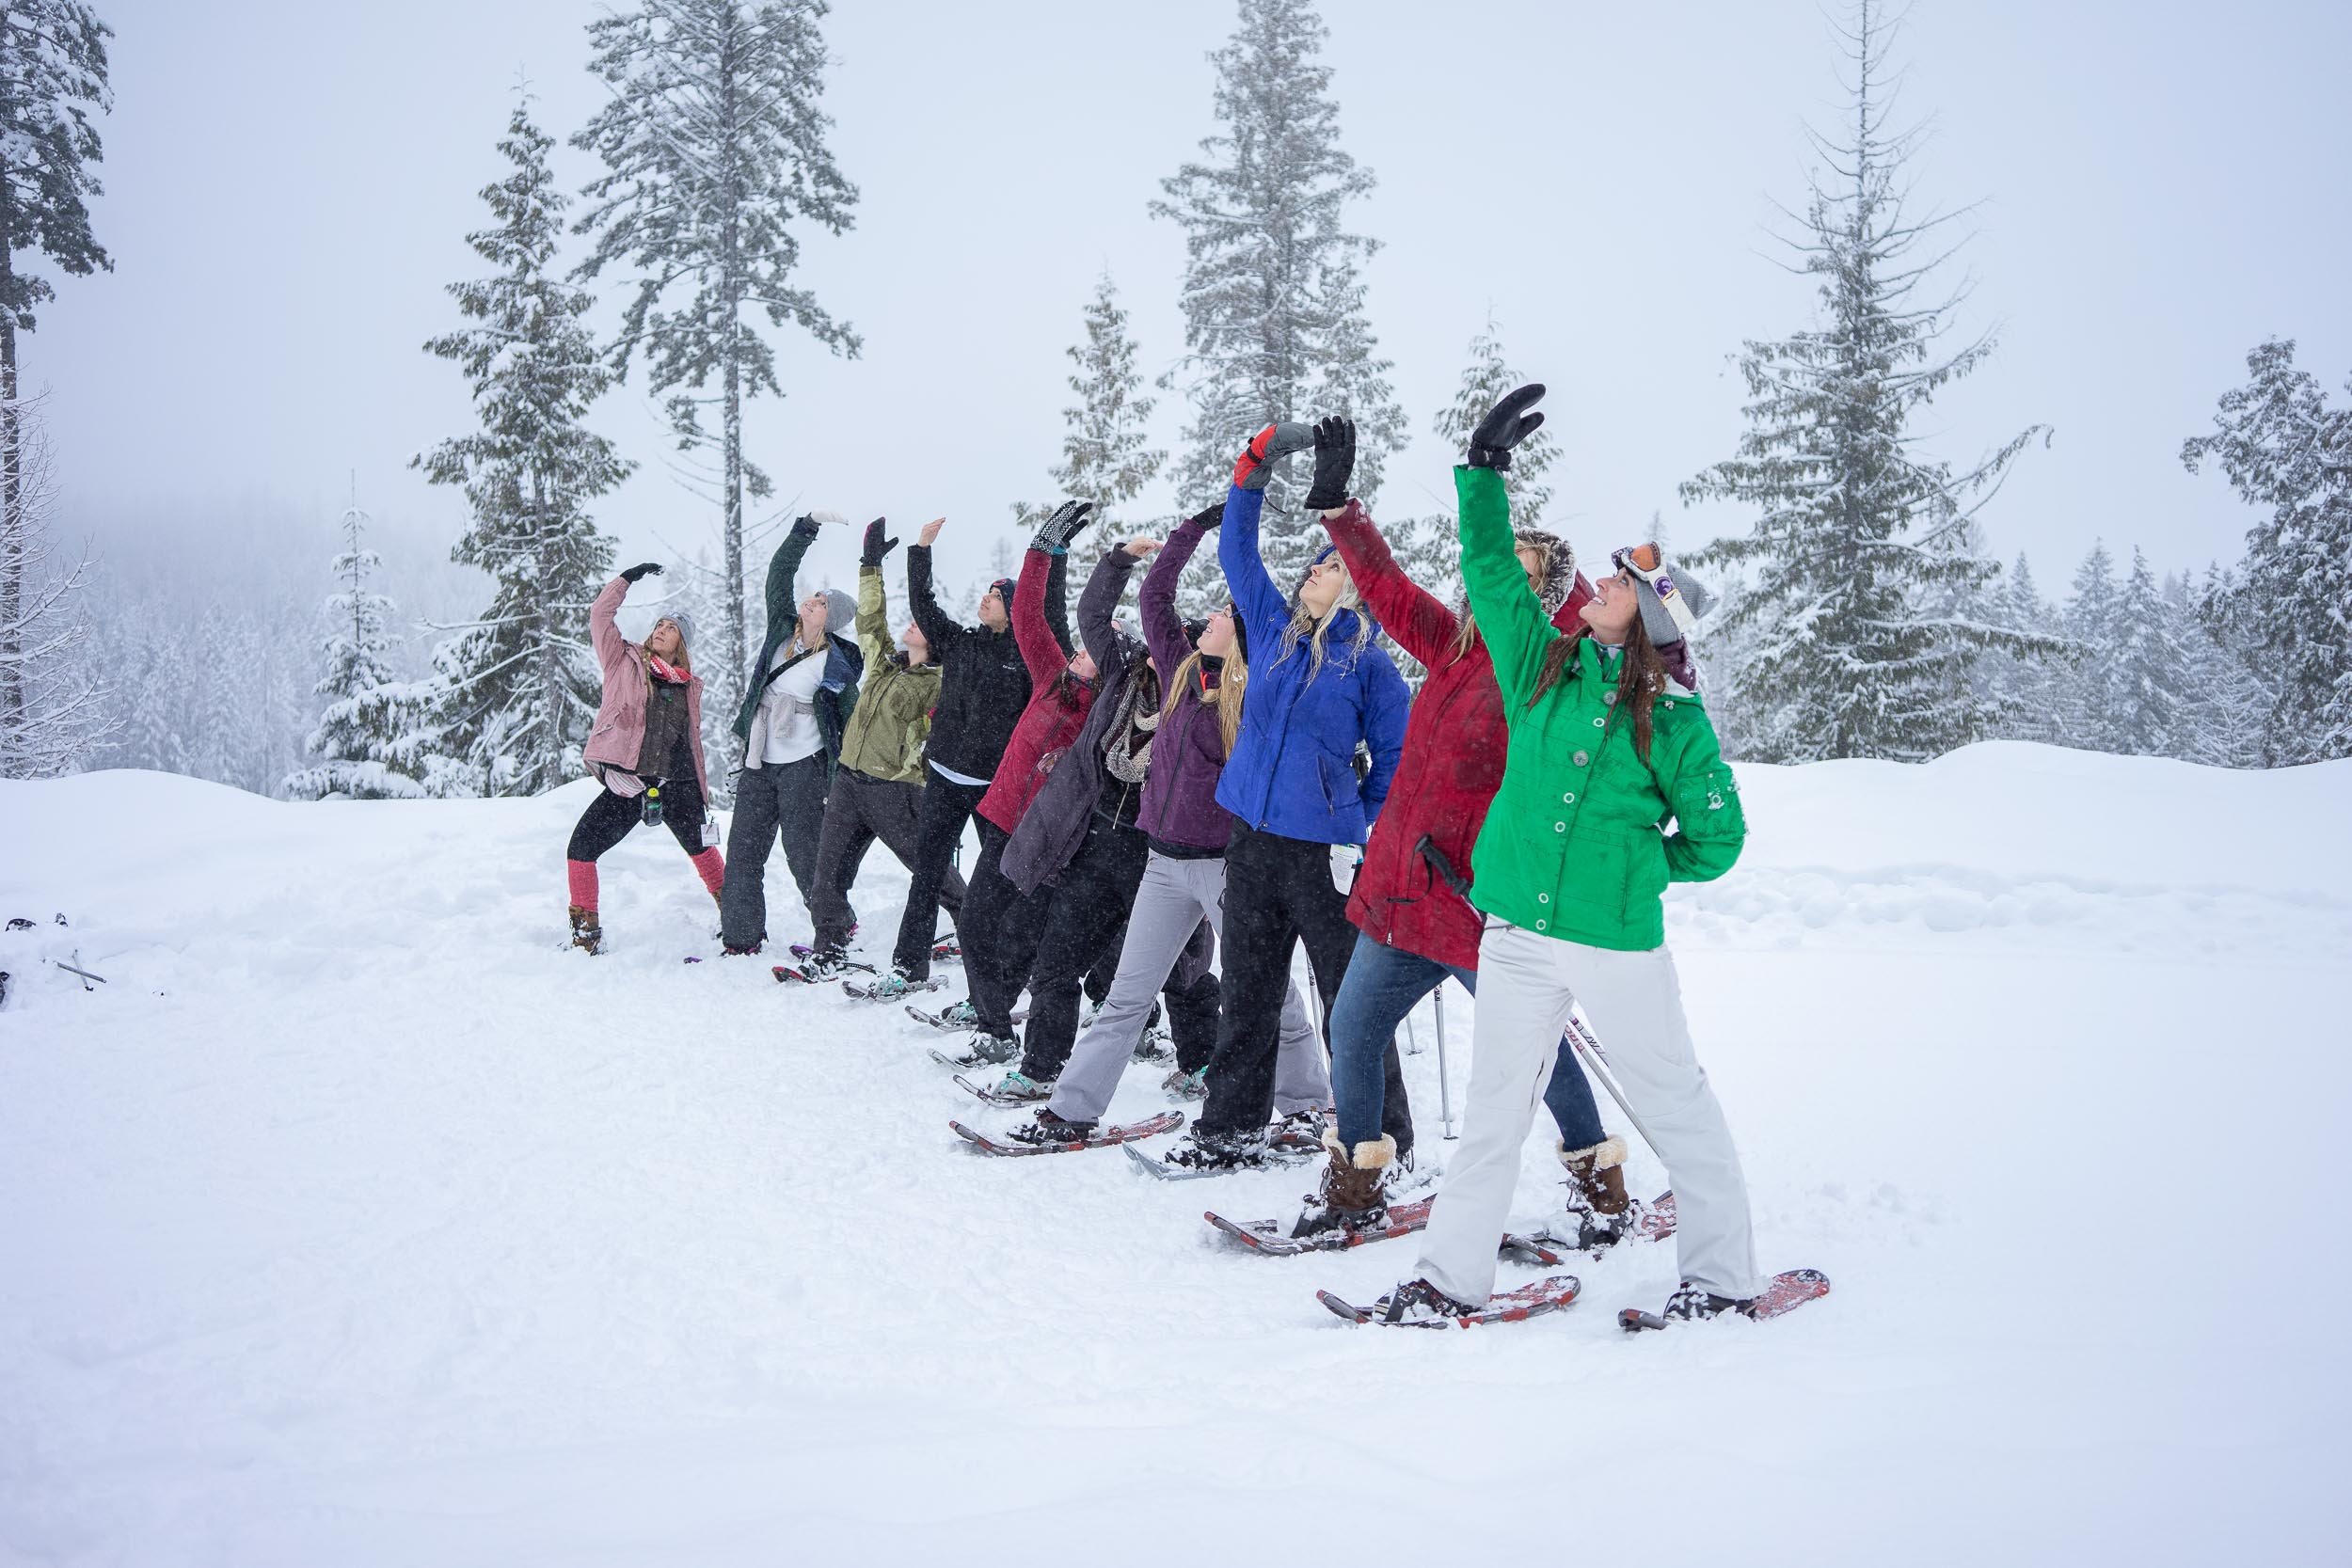 Snowshoeing at Whitefish Resort near Whitefish, Montana